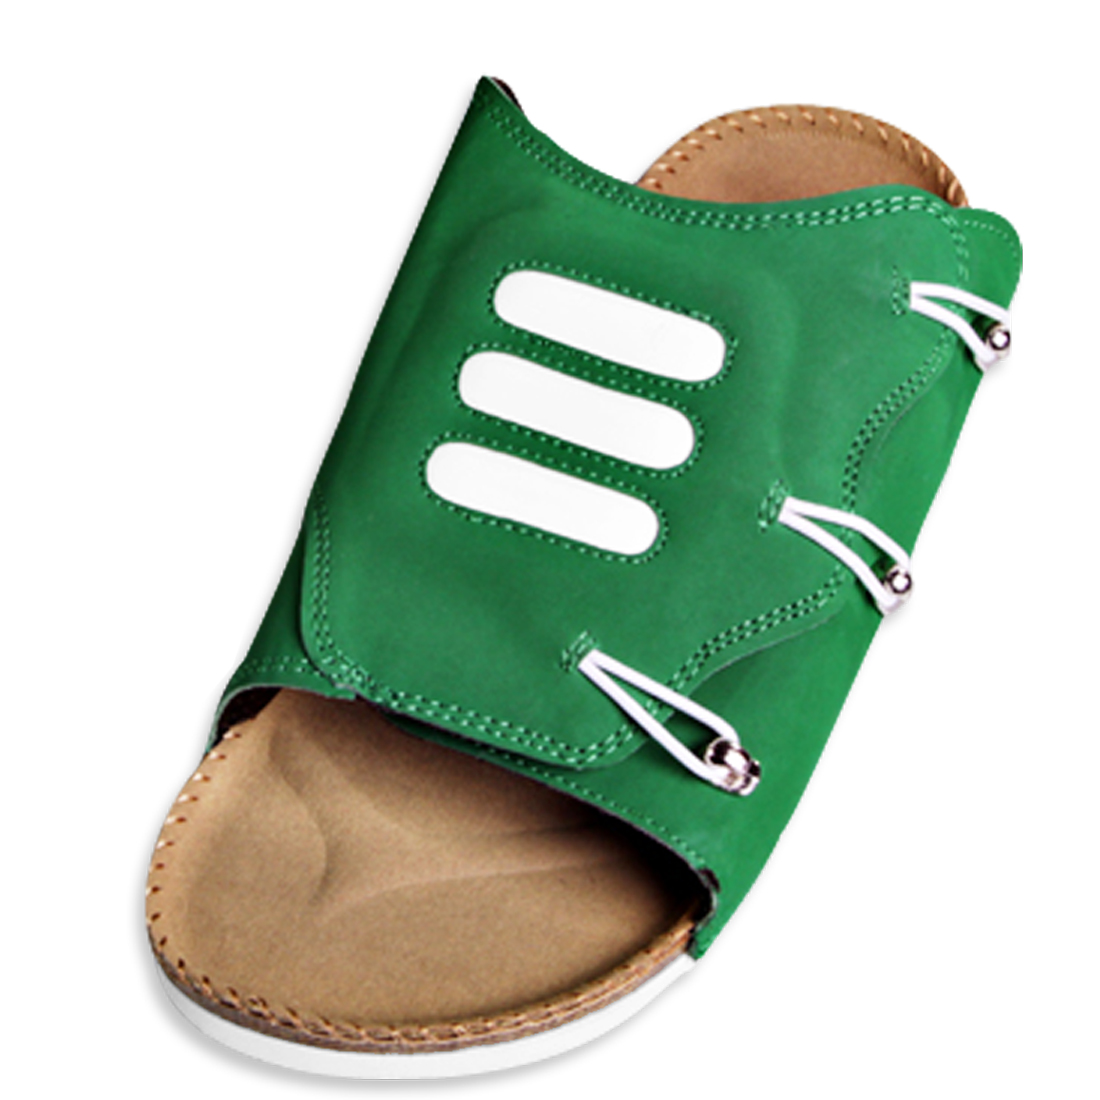 Men Natural Cork Footbed Slip-on Leisure Sandals Green US Size 11